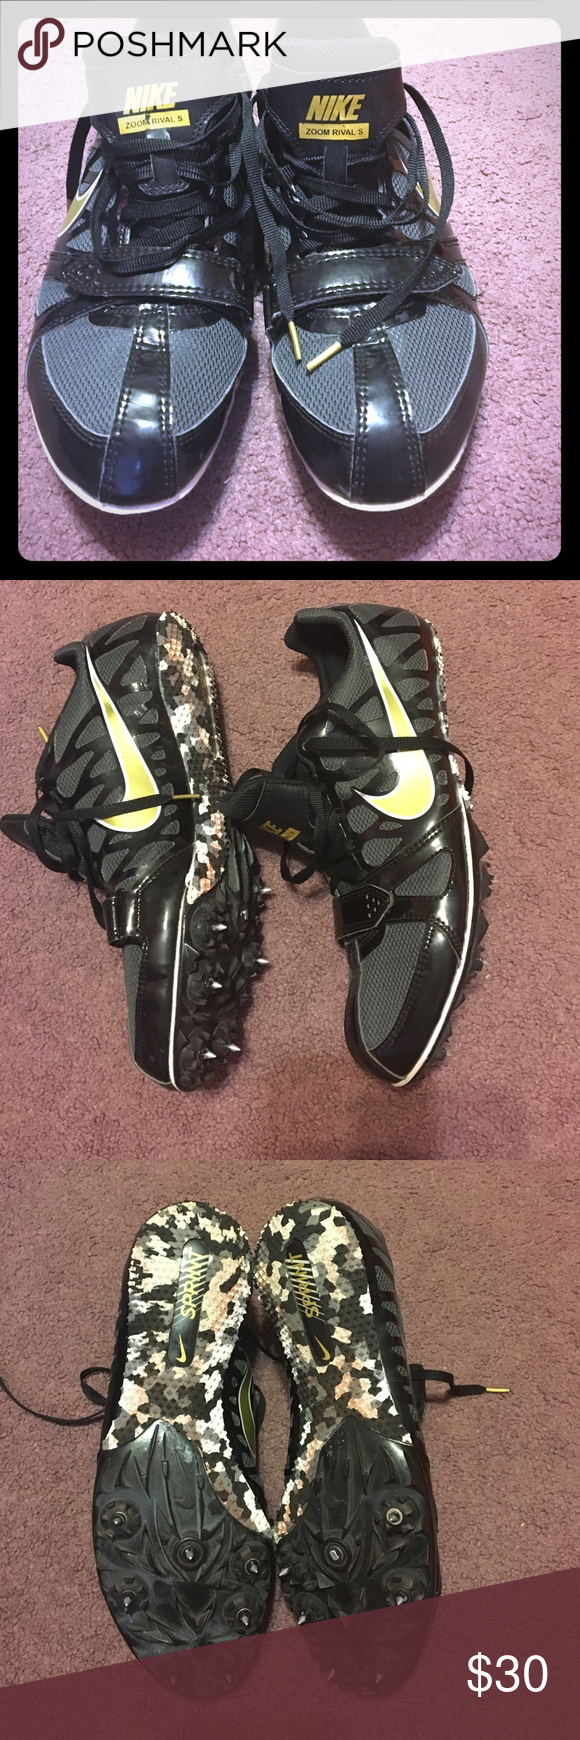 Nike Zoom Rival S Track and Field spikes! Track season is right around the corner!!!!Designed for a sprinter! Super comfortable and great fit! Only wore in 4 meets! Laces are specifically made for this shoe with gold tips! Spikes currently in the shoe are still in great condition!! Nike Shoes Athletic Shoes